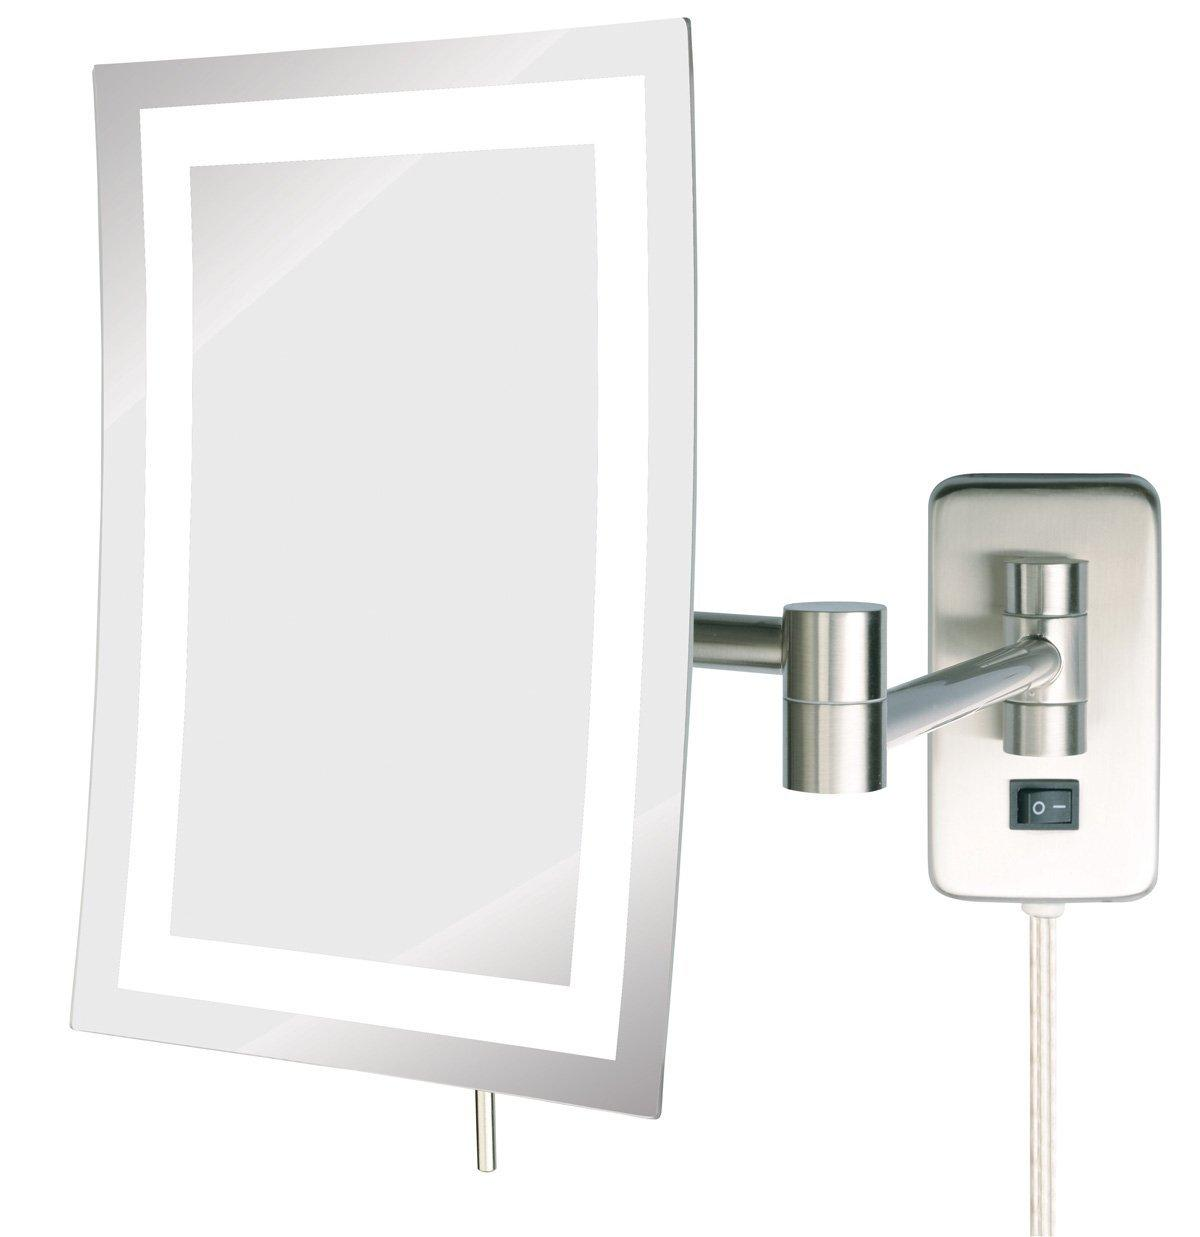 Amazon.com : Jerdon JRT710NL 6.5-Inch by 9-Inch LED Lighted Wall ...